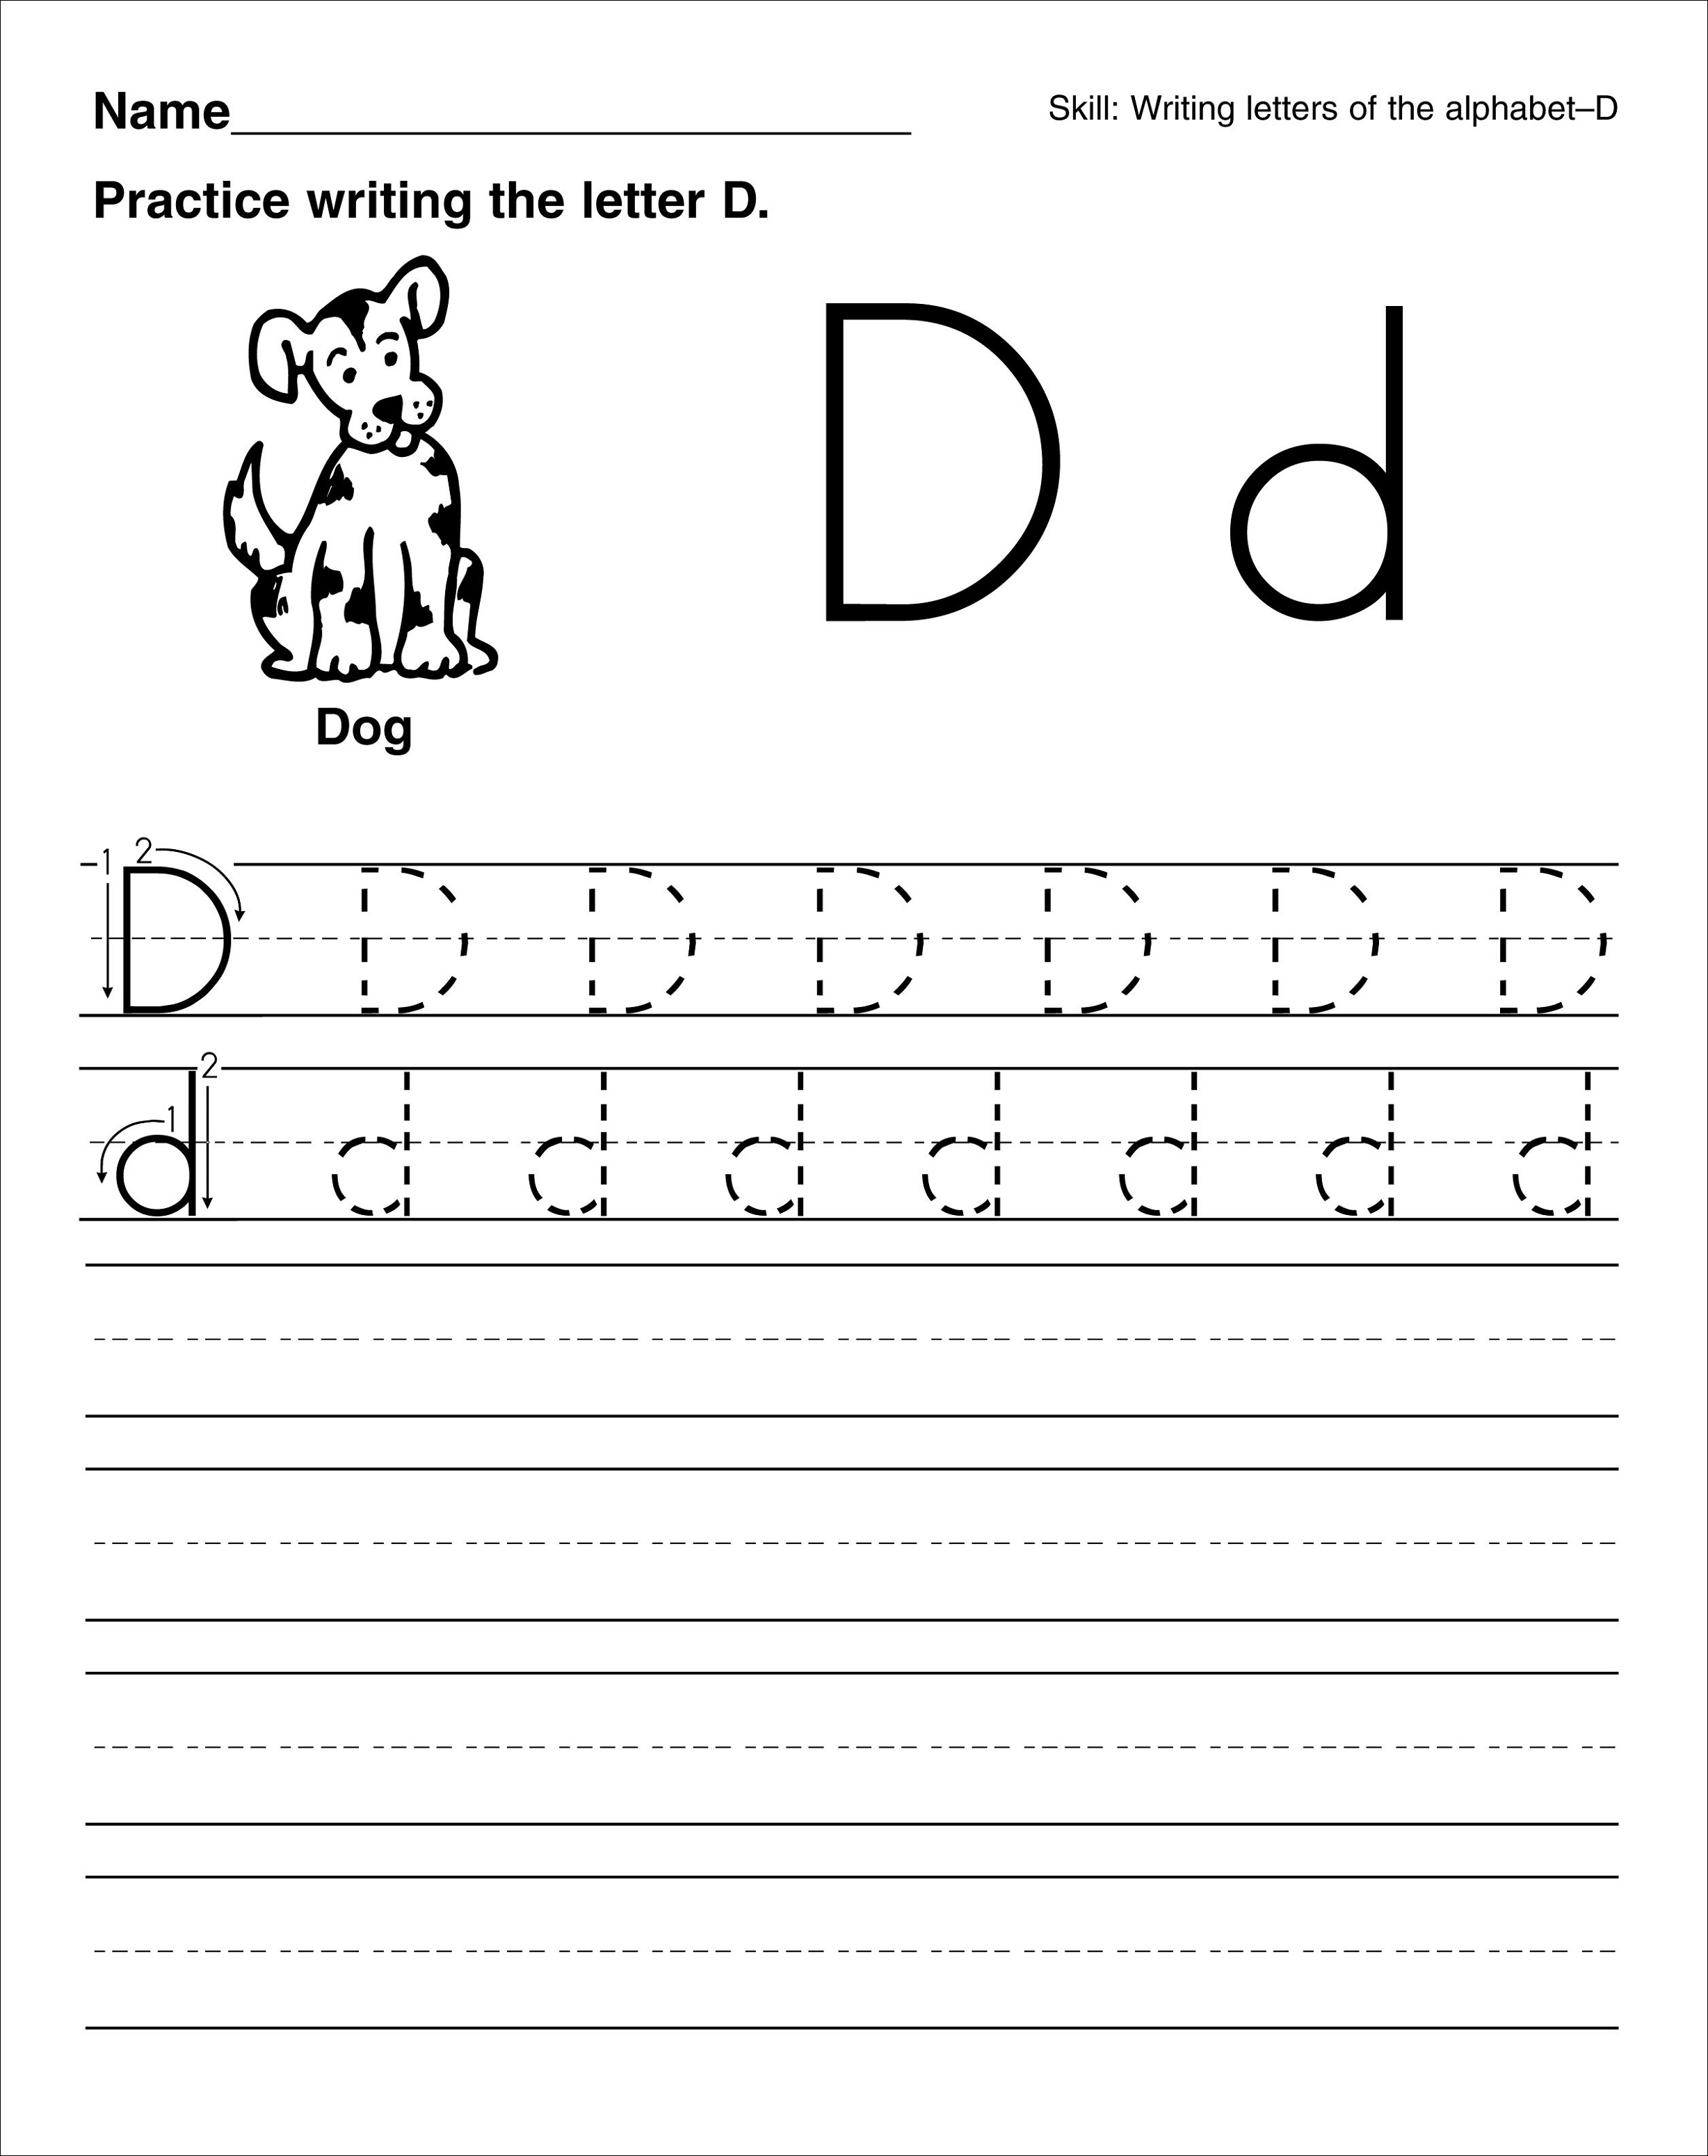 Worksheet Trace Letter D trace letter d worksheets activity shelter for dog